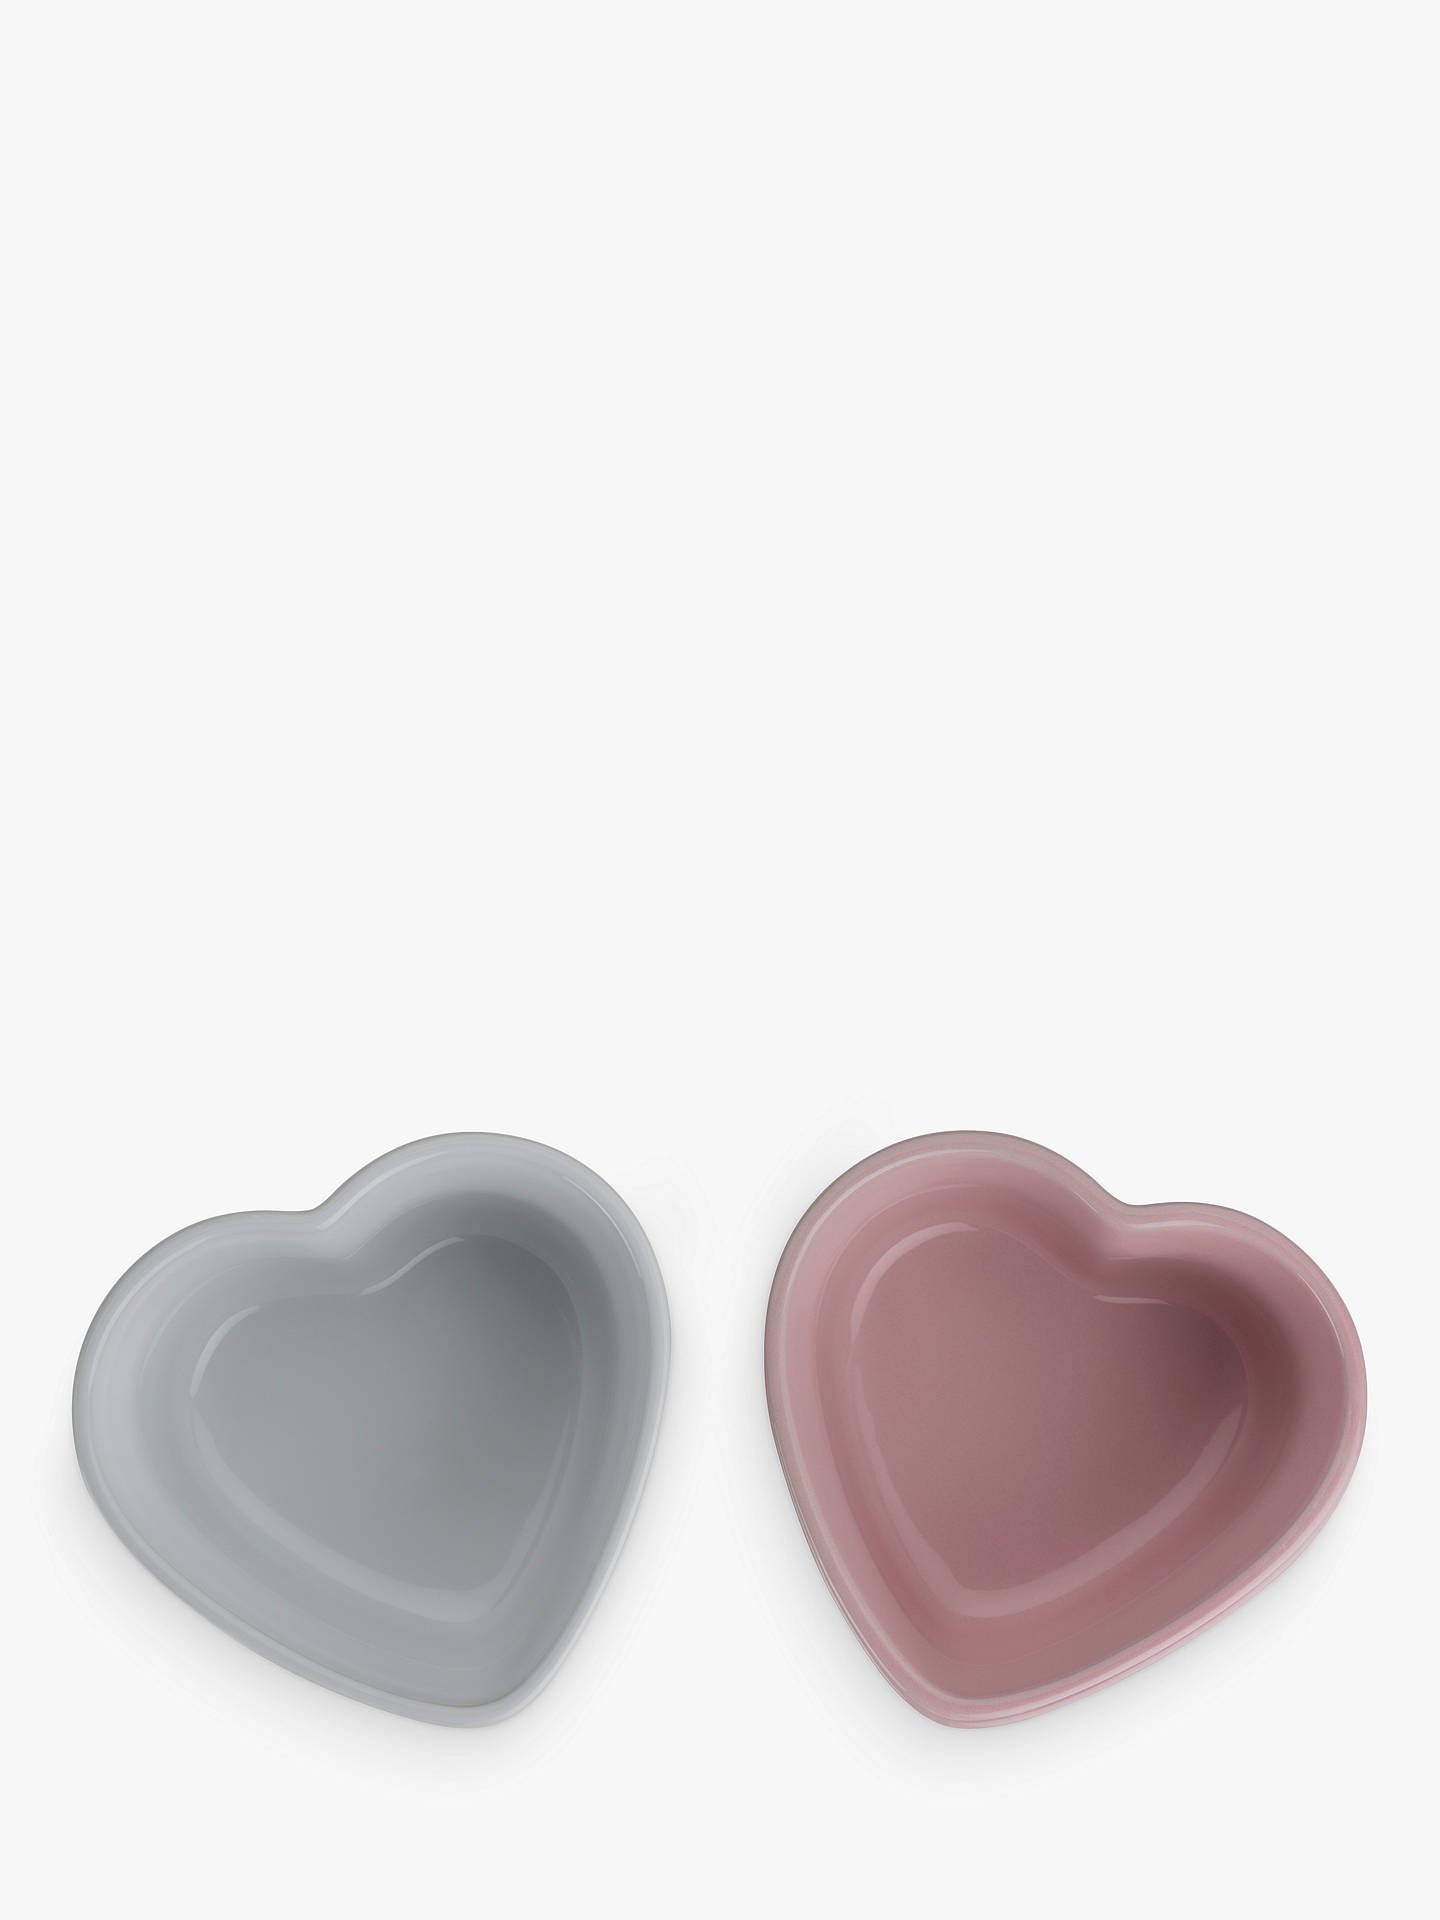 Buy Le Creuset Stoneware Heart Ramekins, Set of 2, Pink/White Online at johnlewis.com